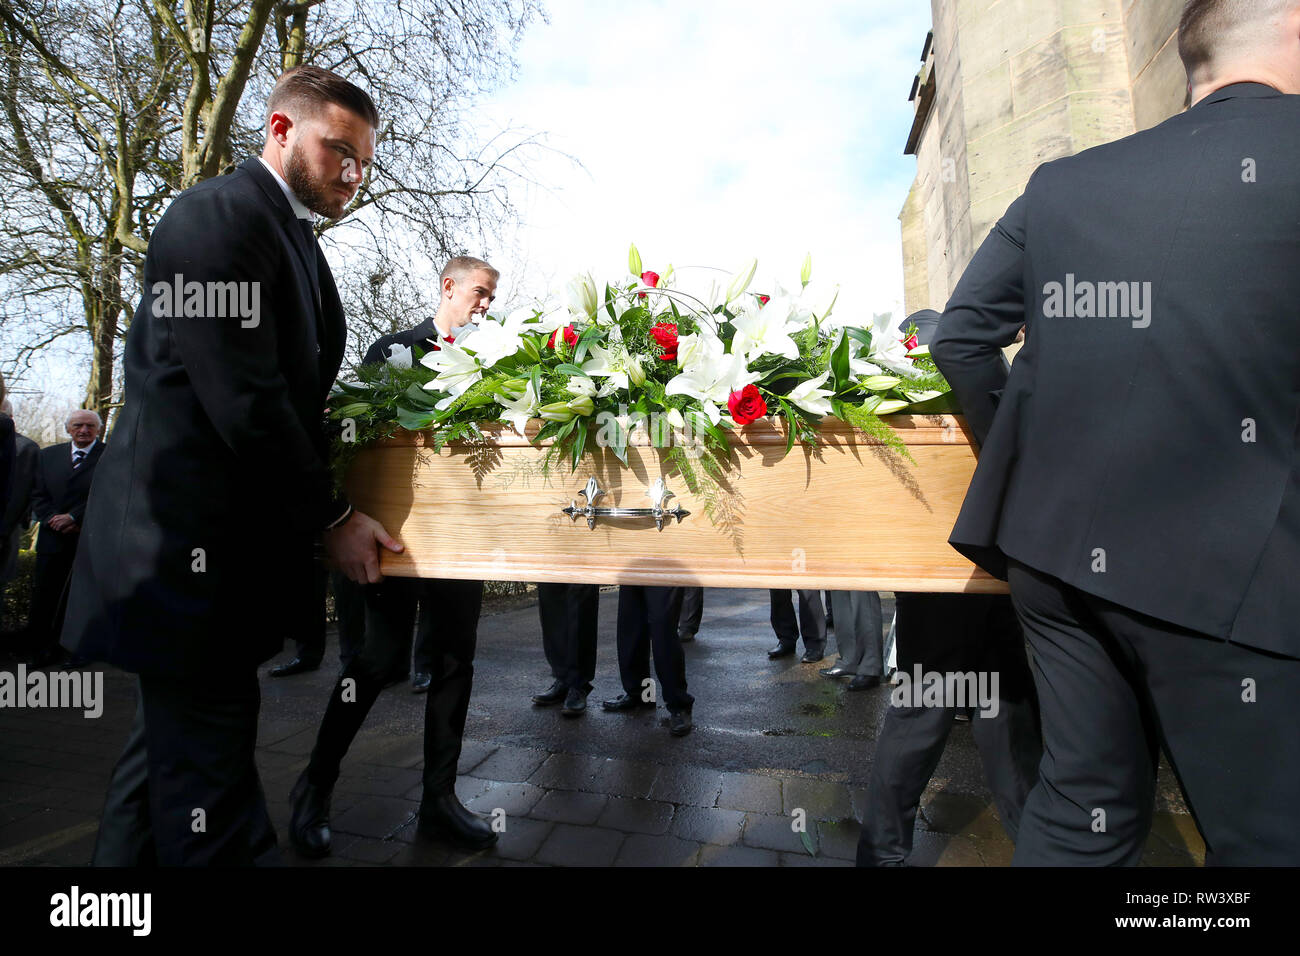 Stoke City goalkeeper Jack Butland (back left) and Burnley goalkeeper Joe Hart carry the coffin during the funeral service for Gordon Banks at Stoke Minster. - Stock Image